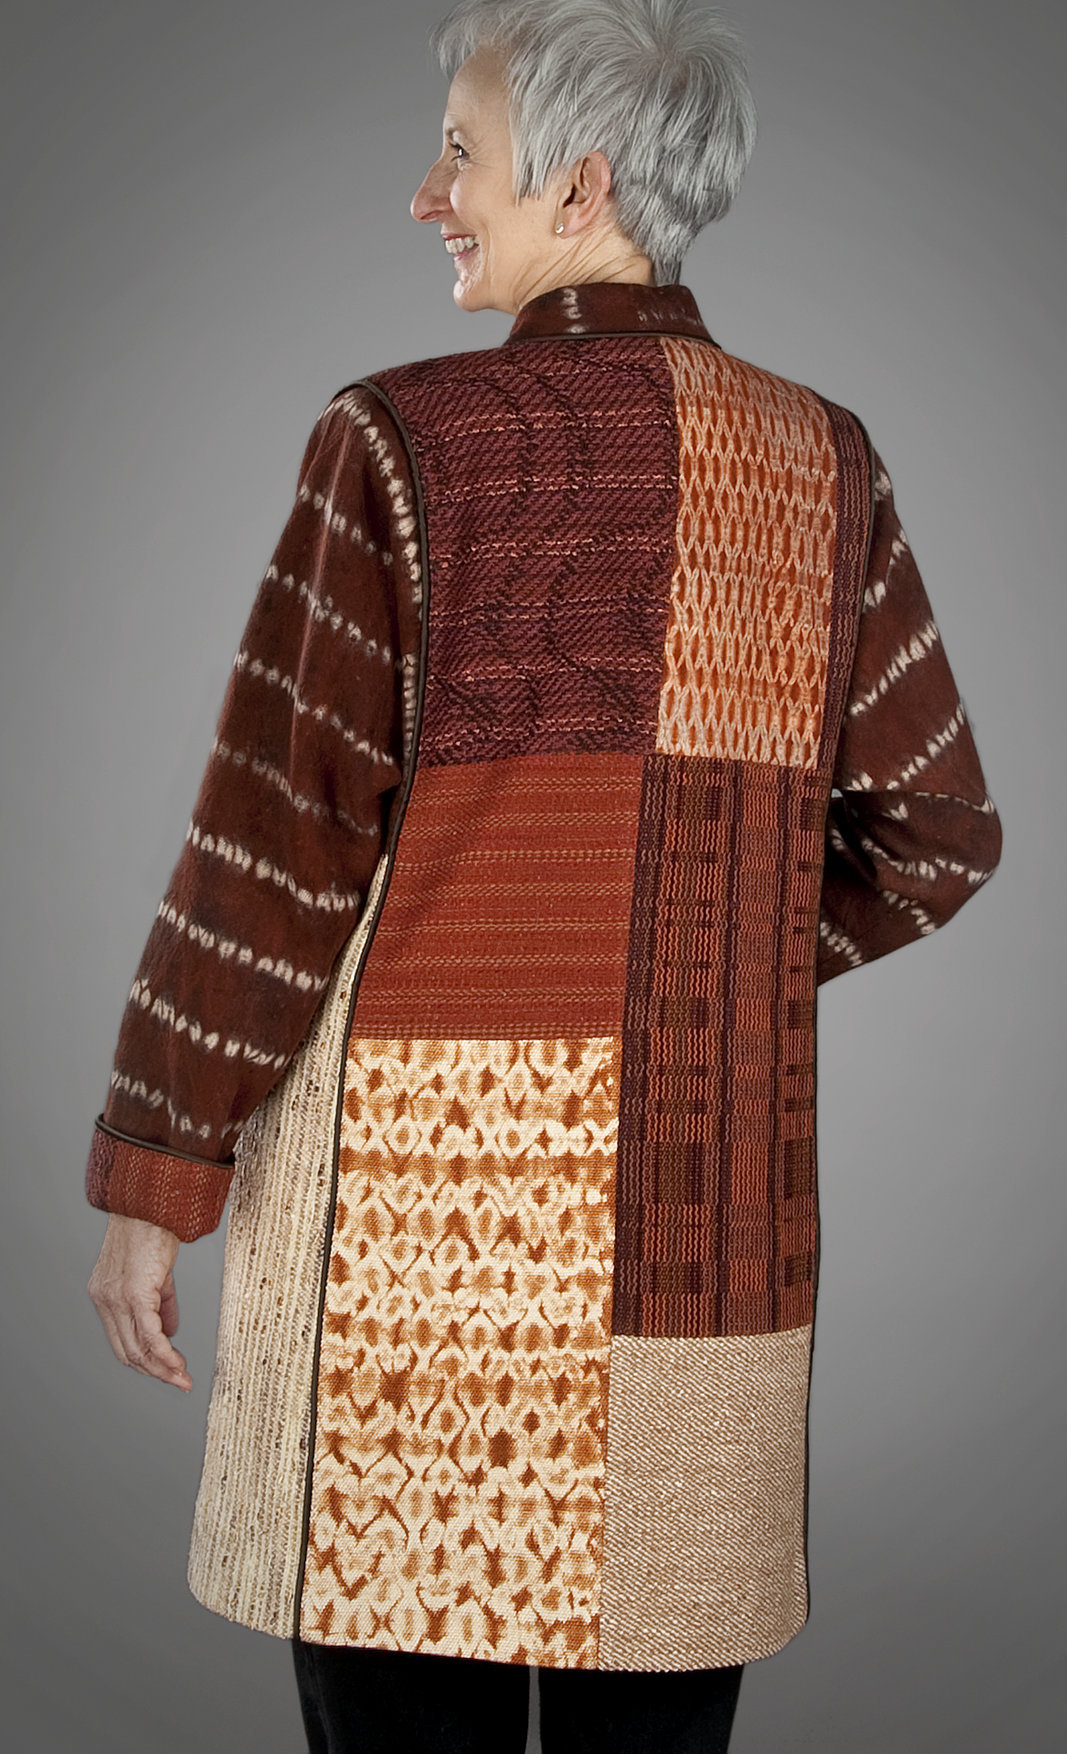 Liz Spear Hand Woven, Art-To-Wear, Clothing-001.jpg